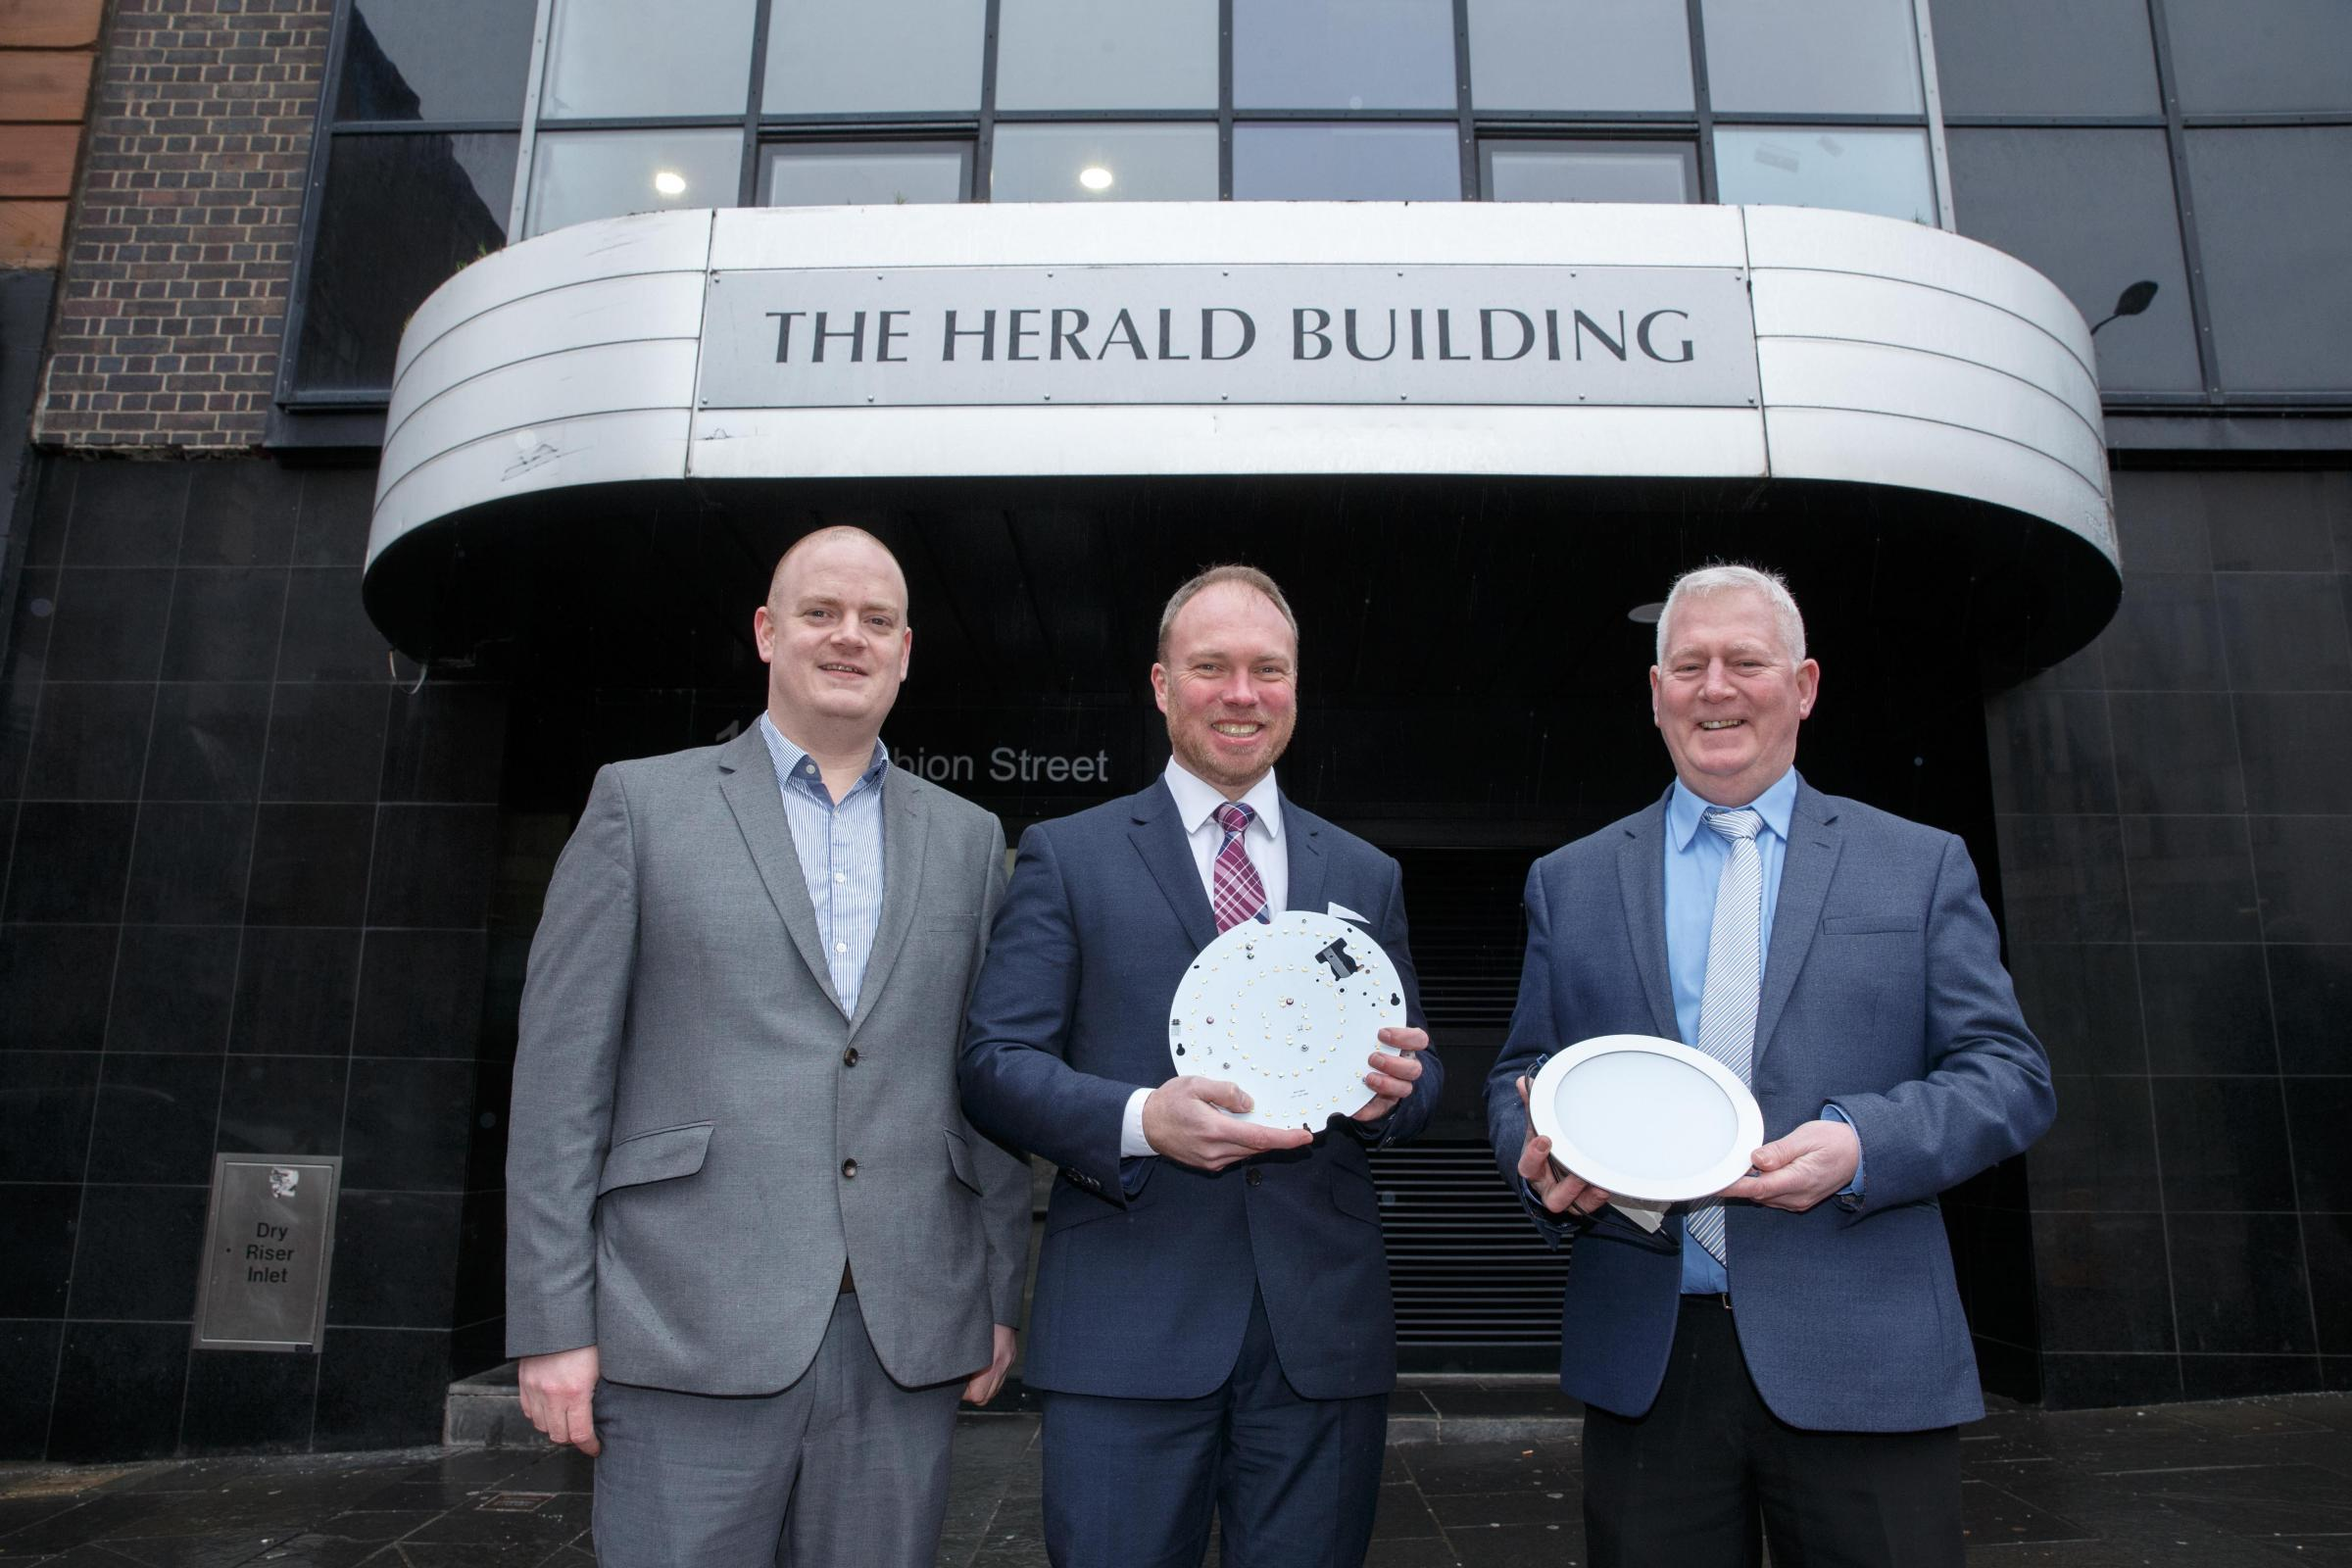 Pictured left to right, The Herald's Stephen McTaggart, Joint Newton Property Management MD, Derek MacDonald, and property manager, Tom McCusker, are pictured with the new lights outside the Herald Building in Albion Street, Glasgow